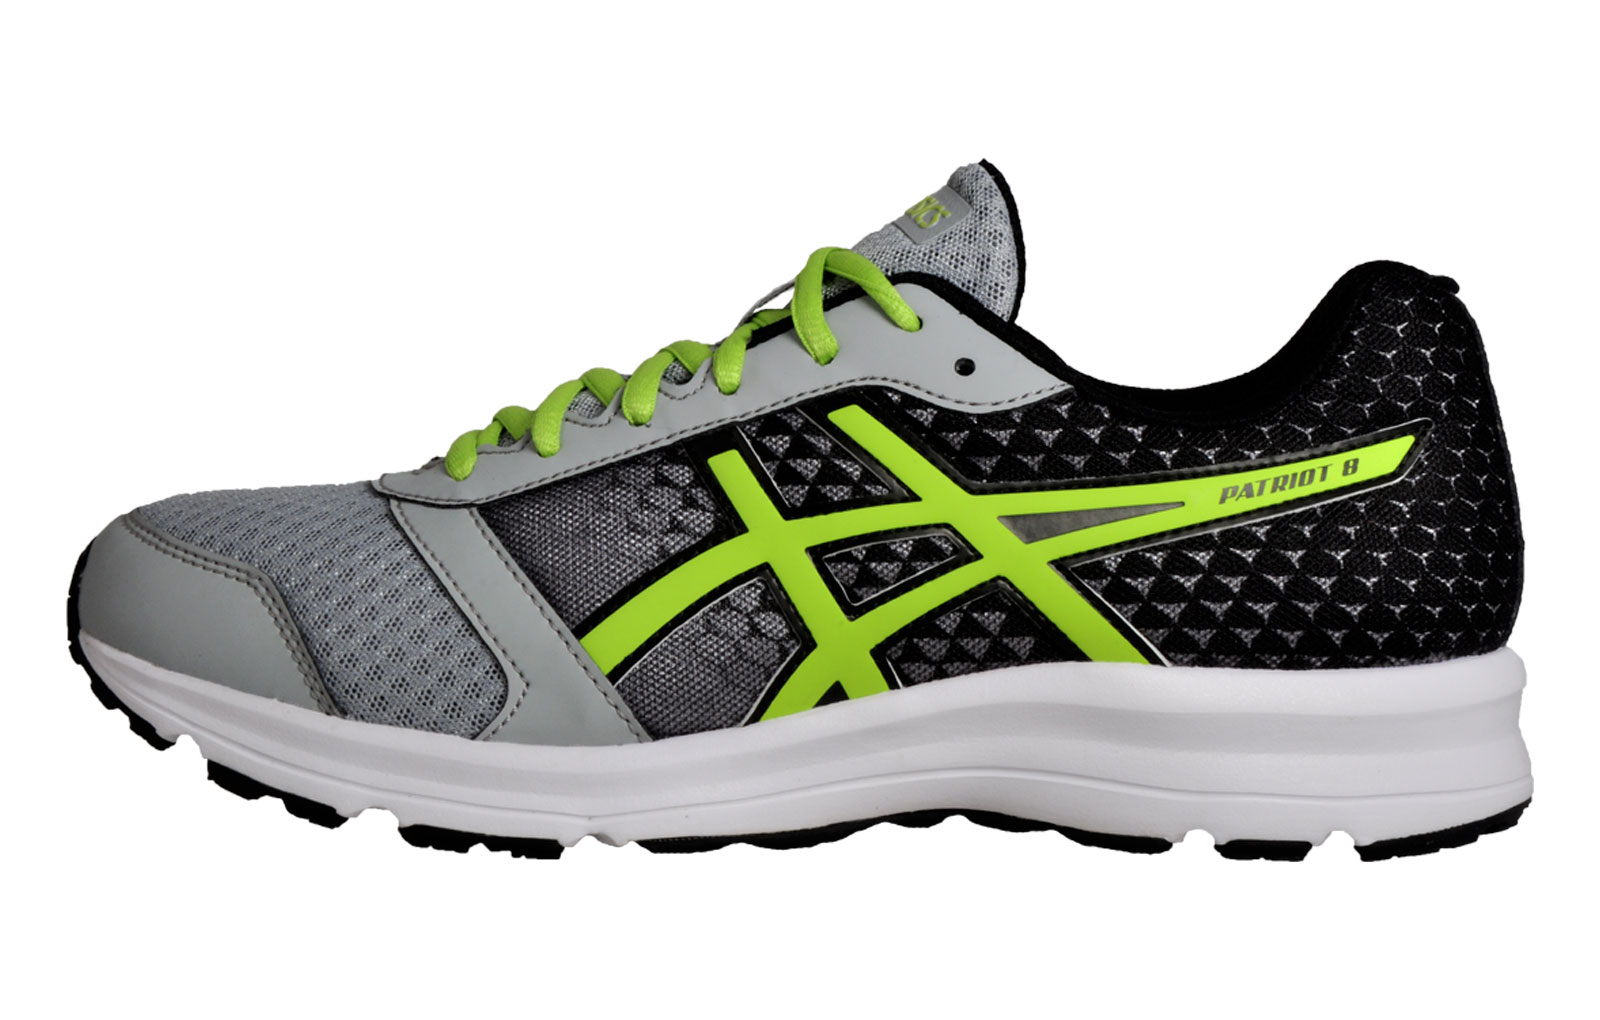 the best attitude 70b20 33851 Asics Patriot 8 Mens Running Shoes Fitness Gym Trainers Silver Grey Black